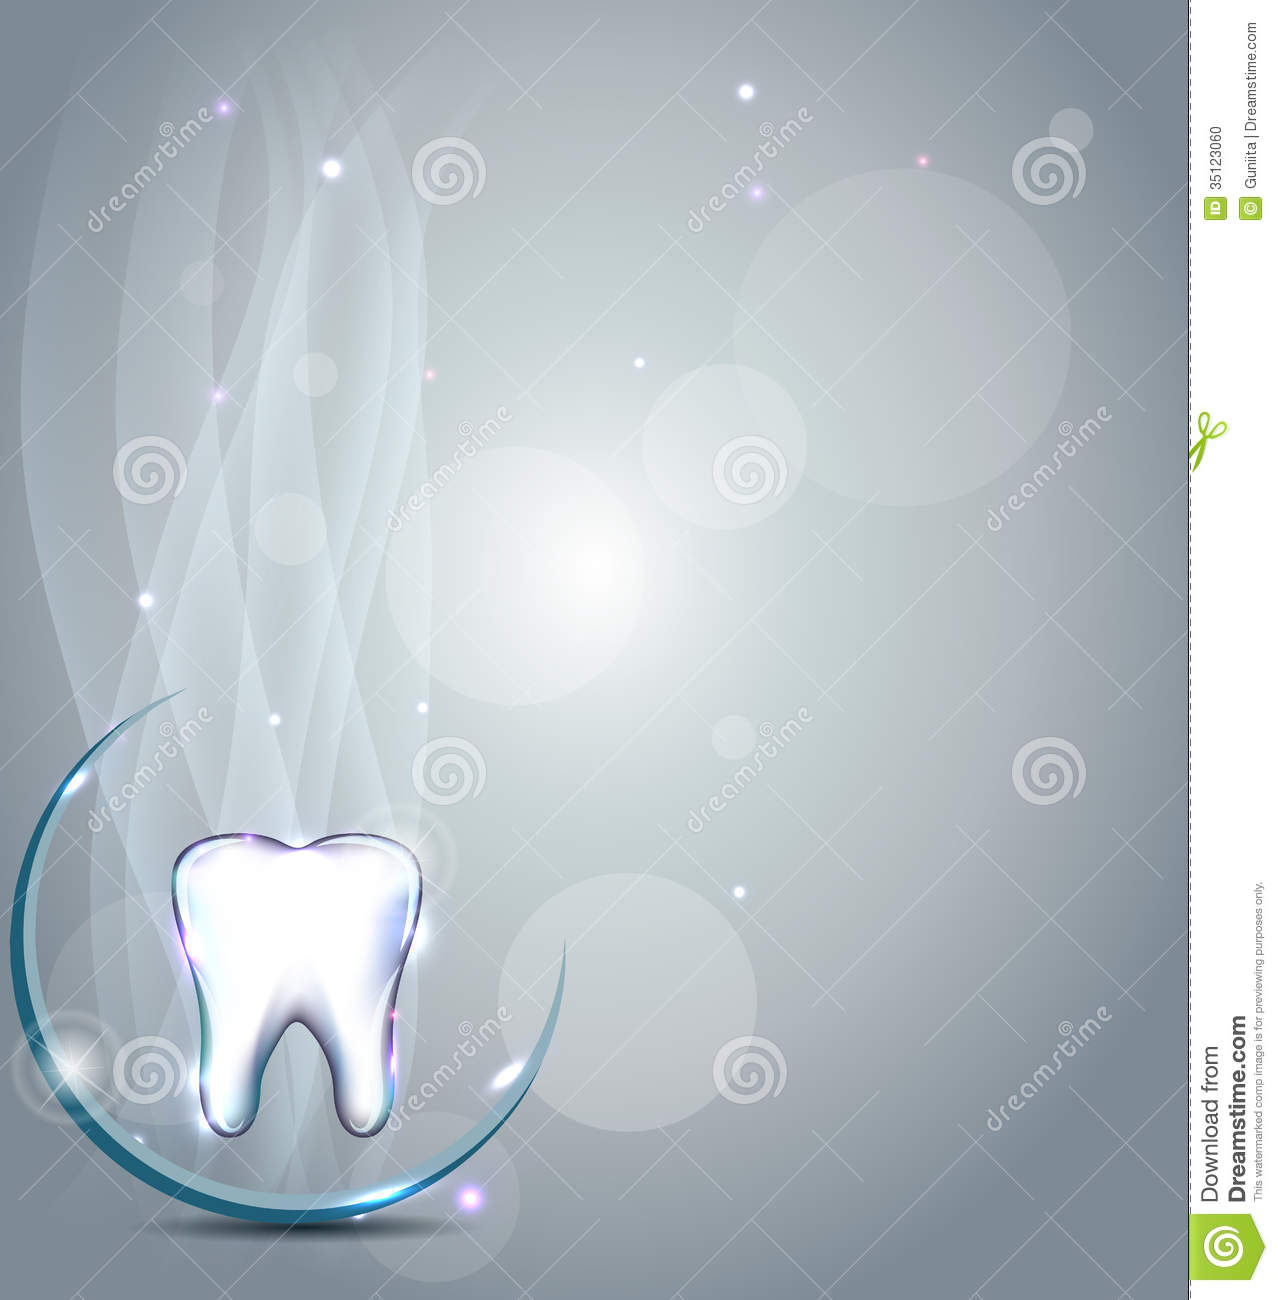 Dental Background Stock Photo - Image: 35123060